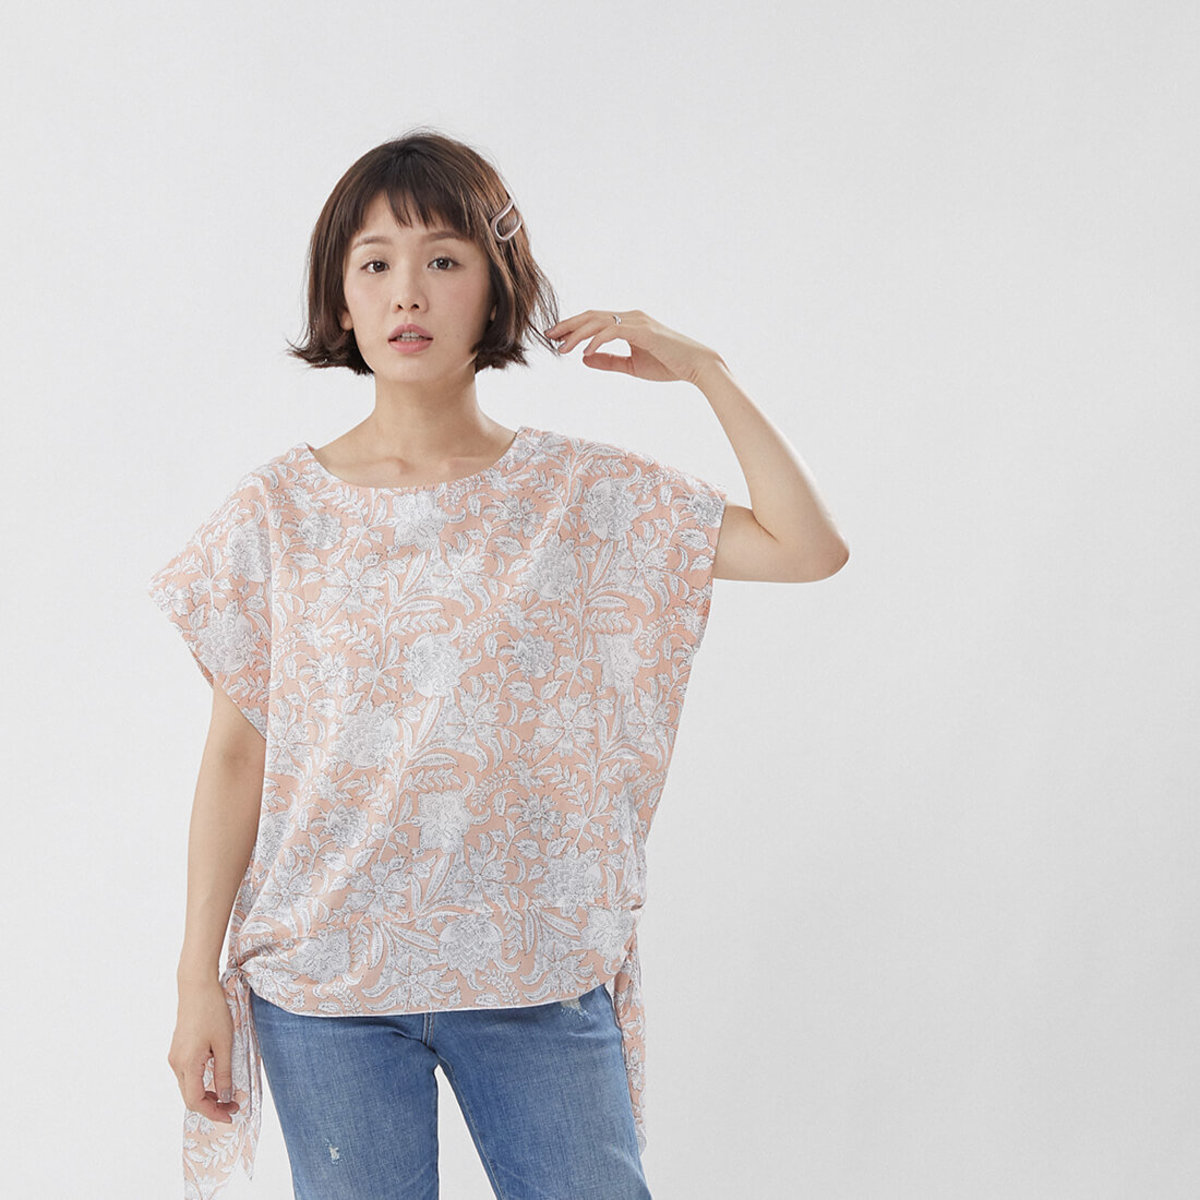 Elisa Cotton Floral Printed Knot-side Cotton Top Pink